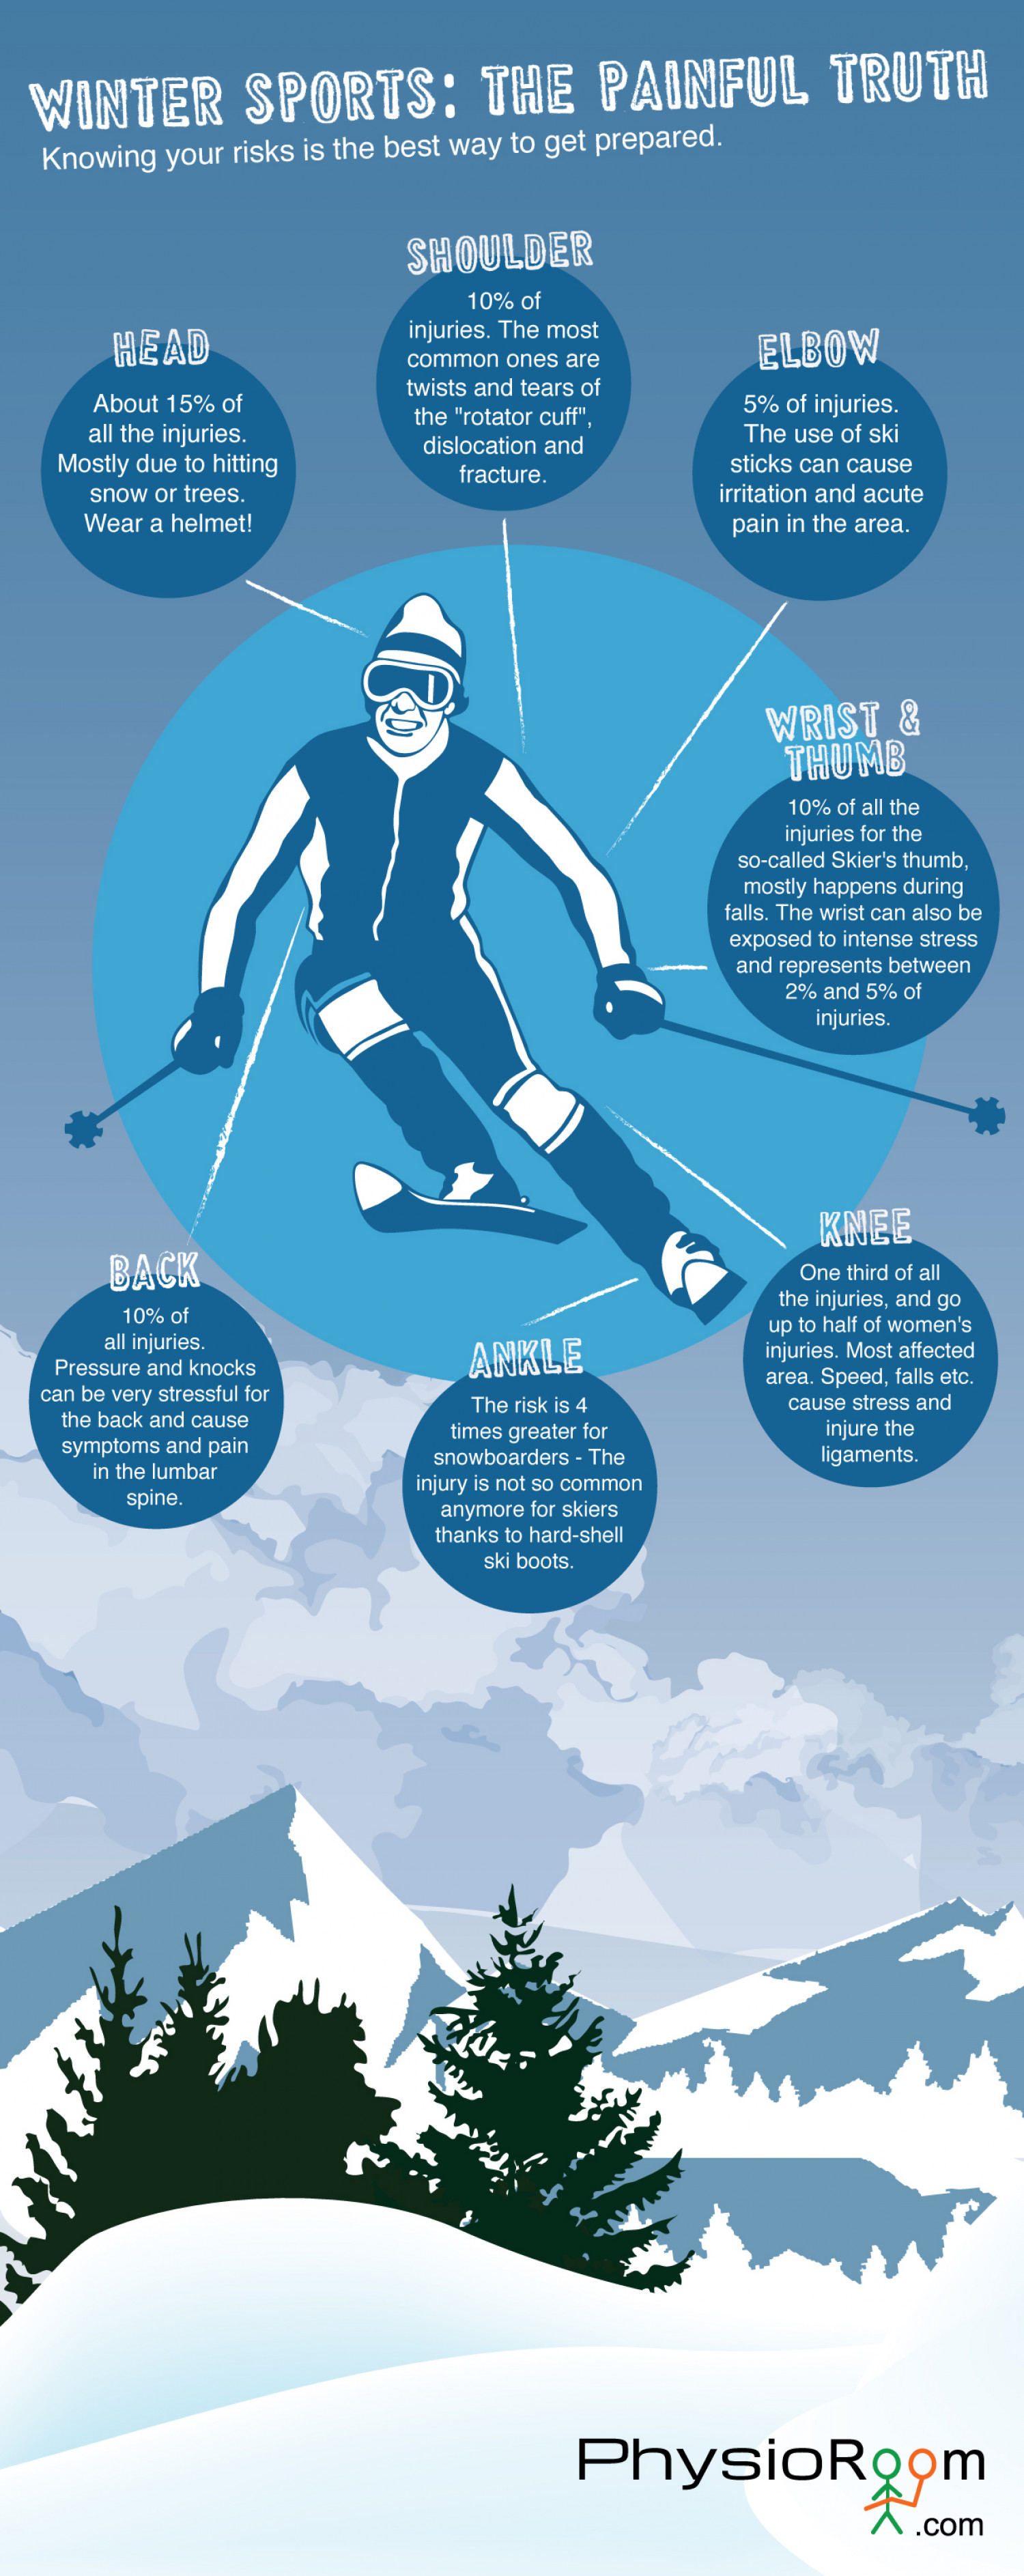 Winter Sports: The painful truth Infographic